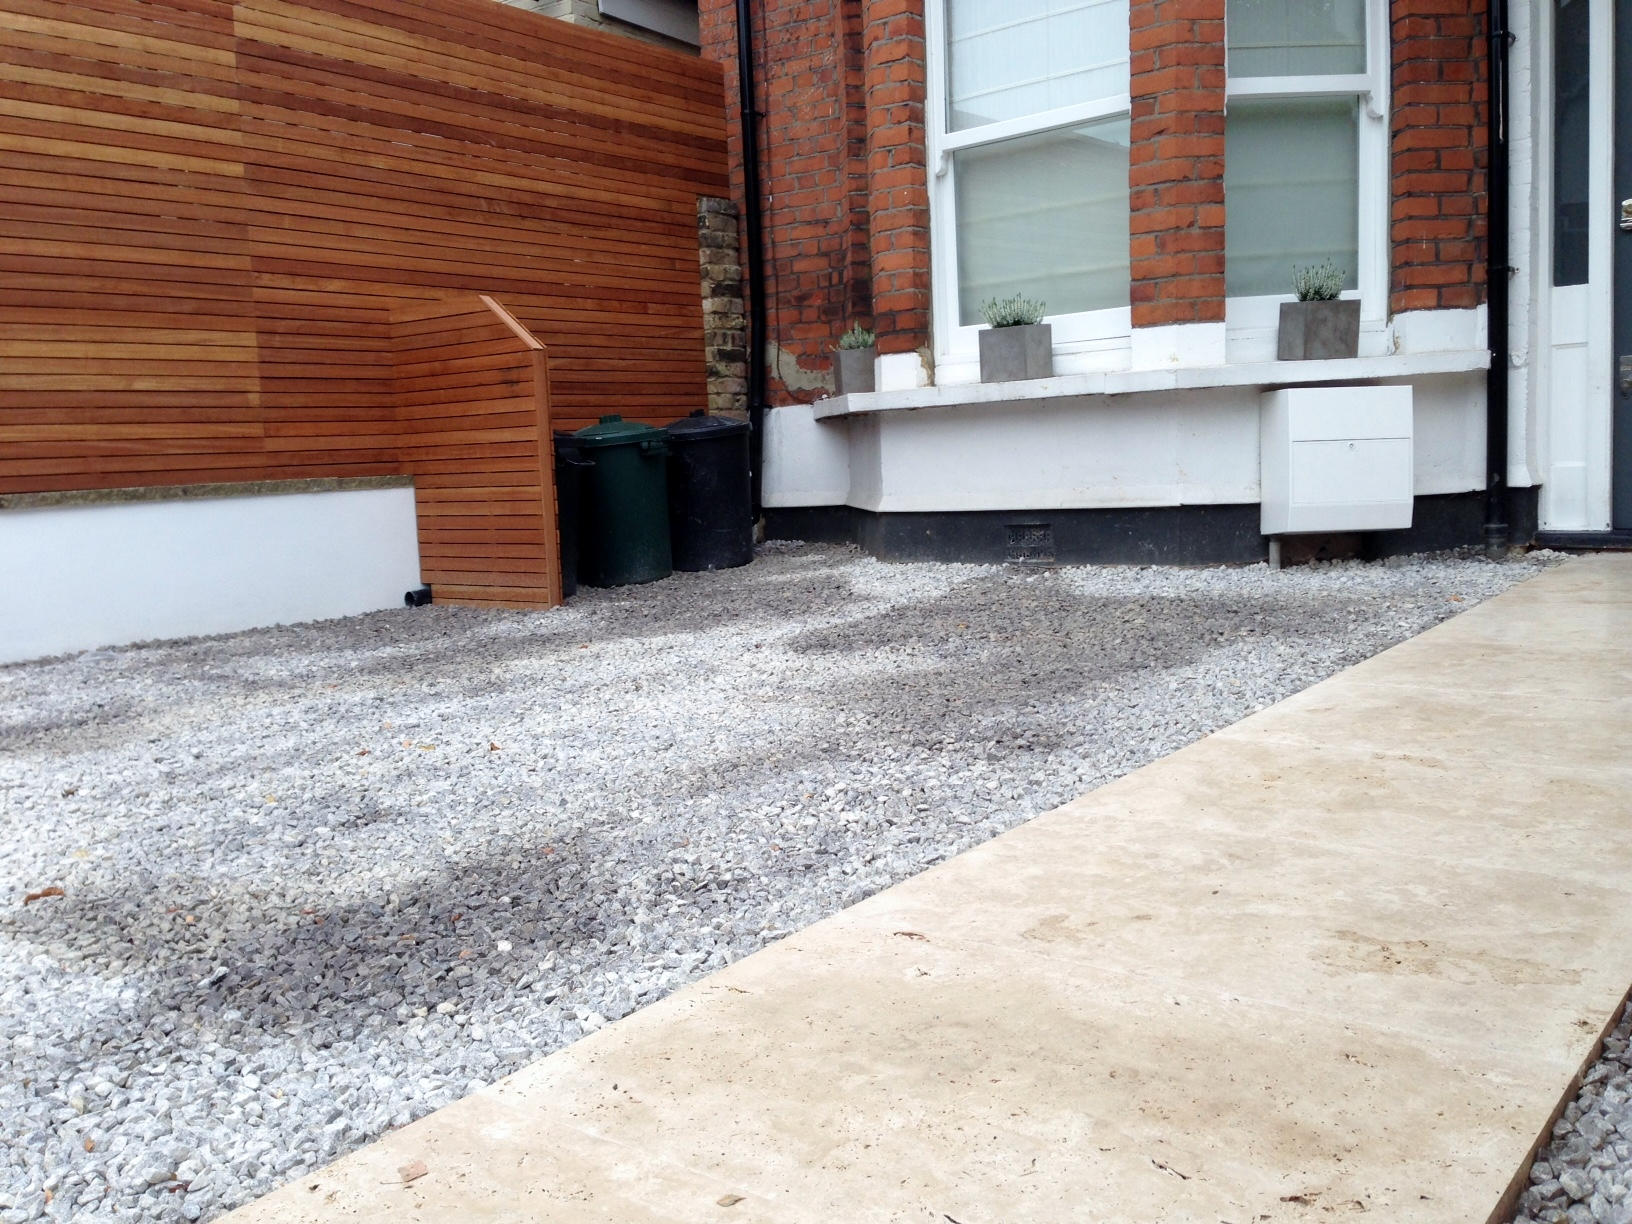 front garden drivewat gravel travertine paving path hardwood privacy screen trellis tooting london (7)